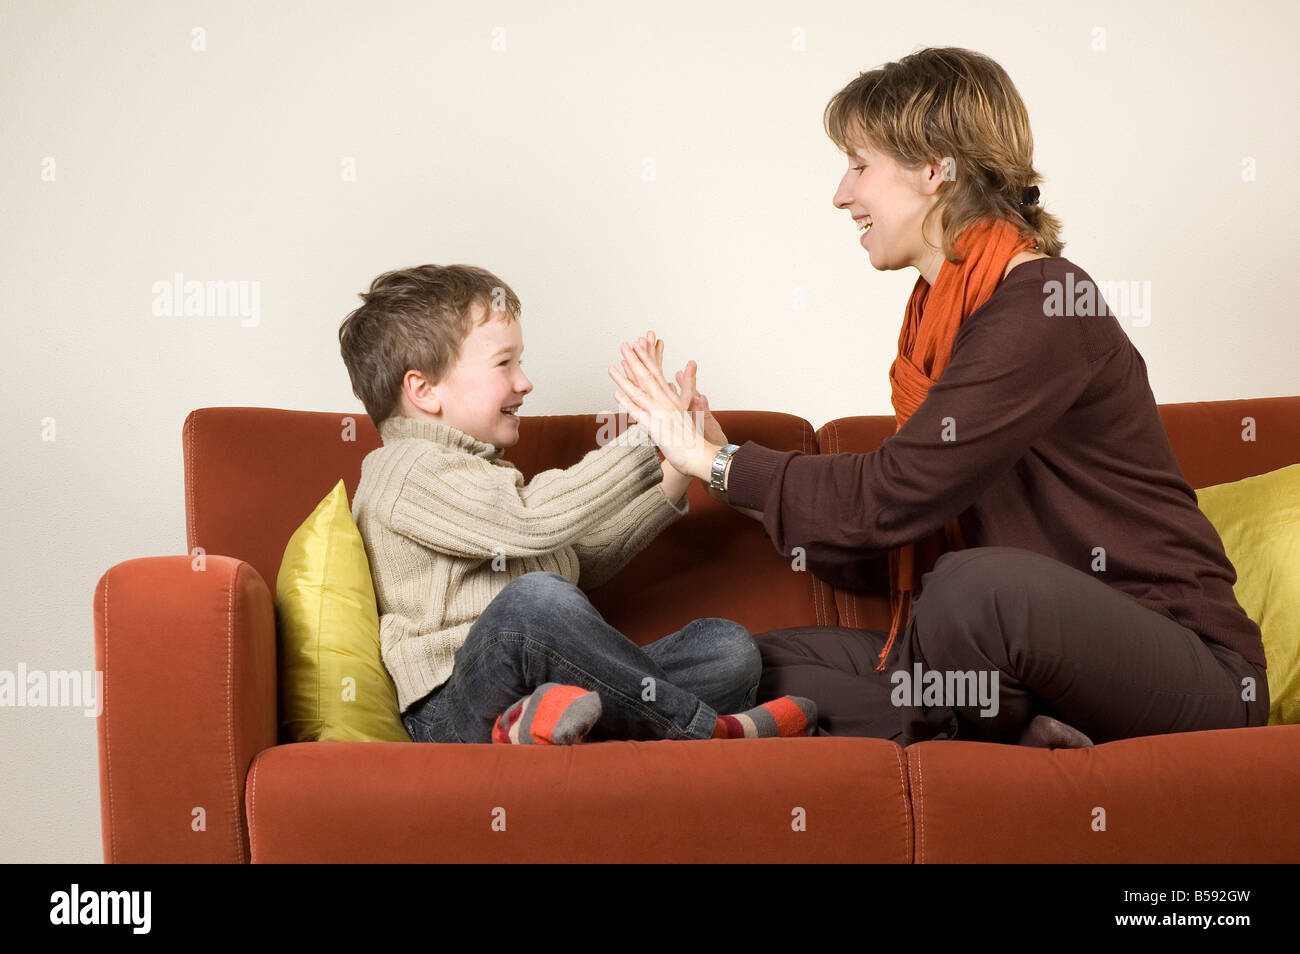 Mother and son are playing a clapping game on the couch - Stock Image